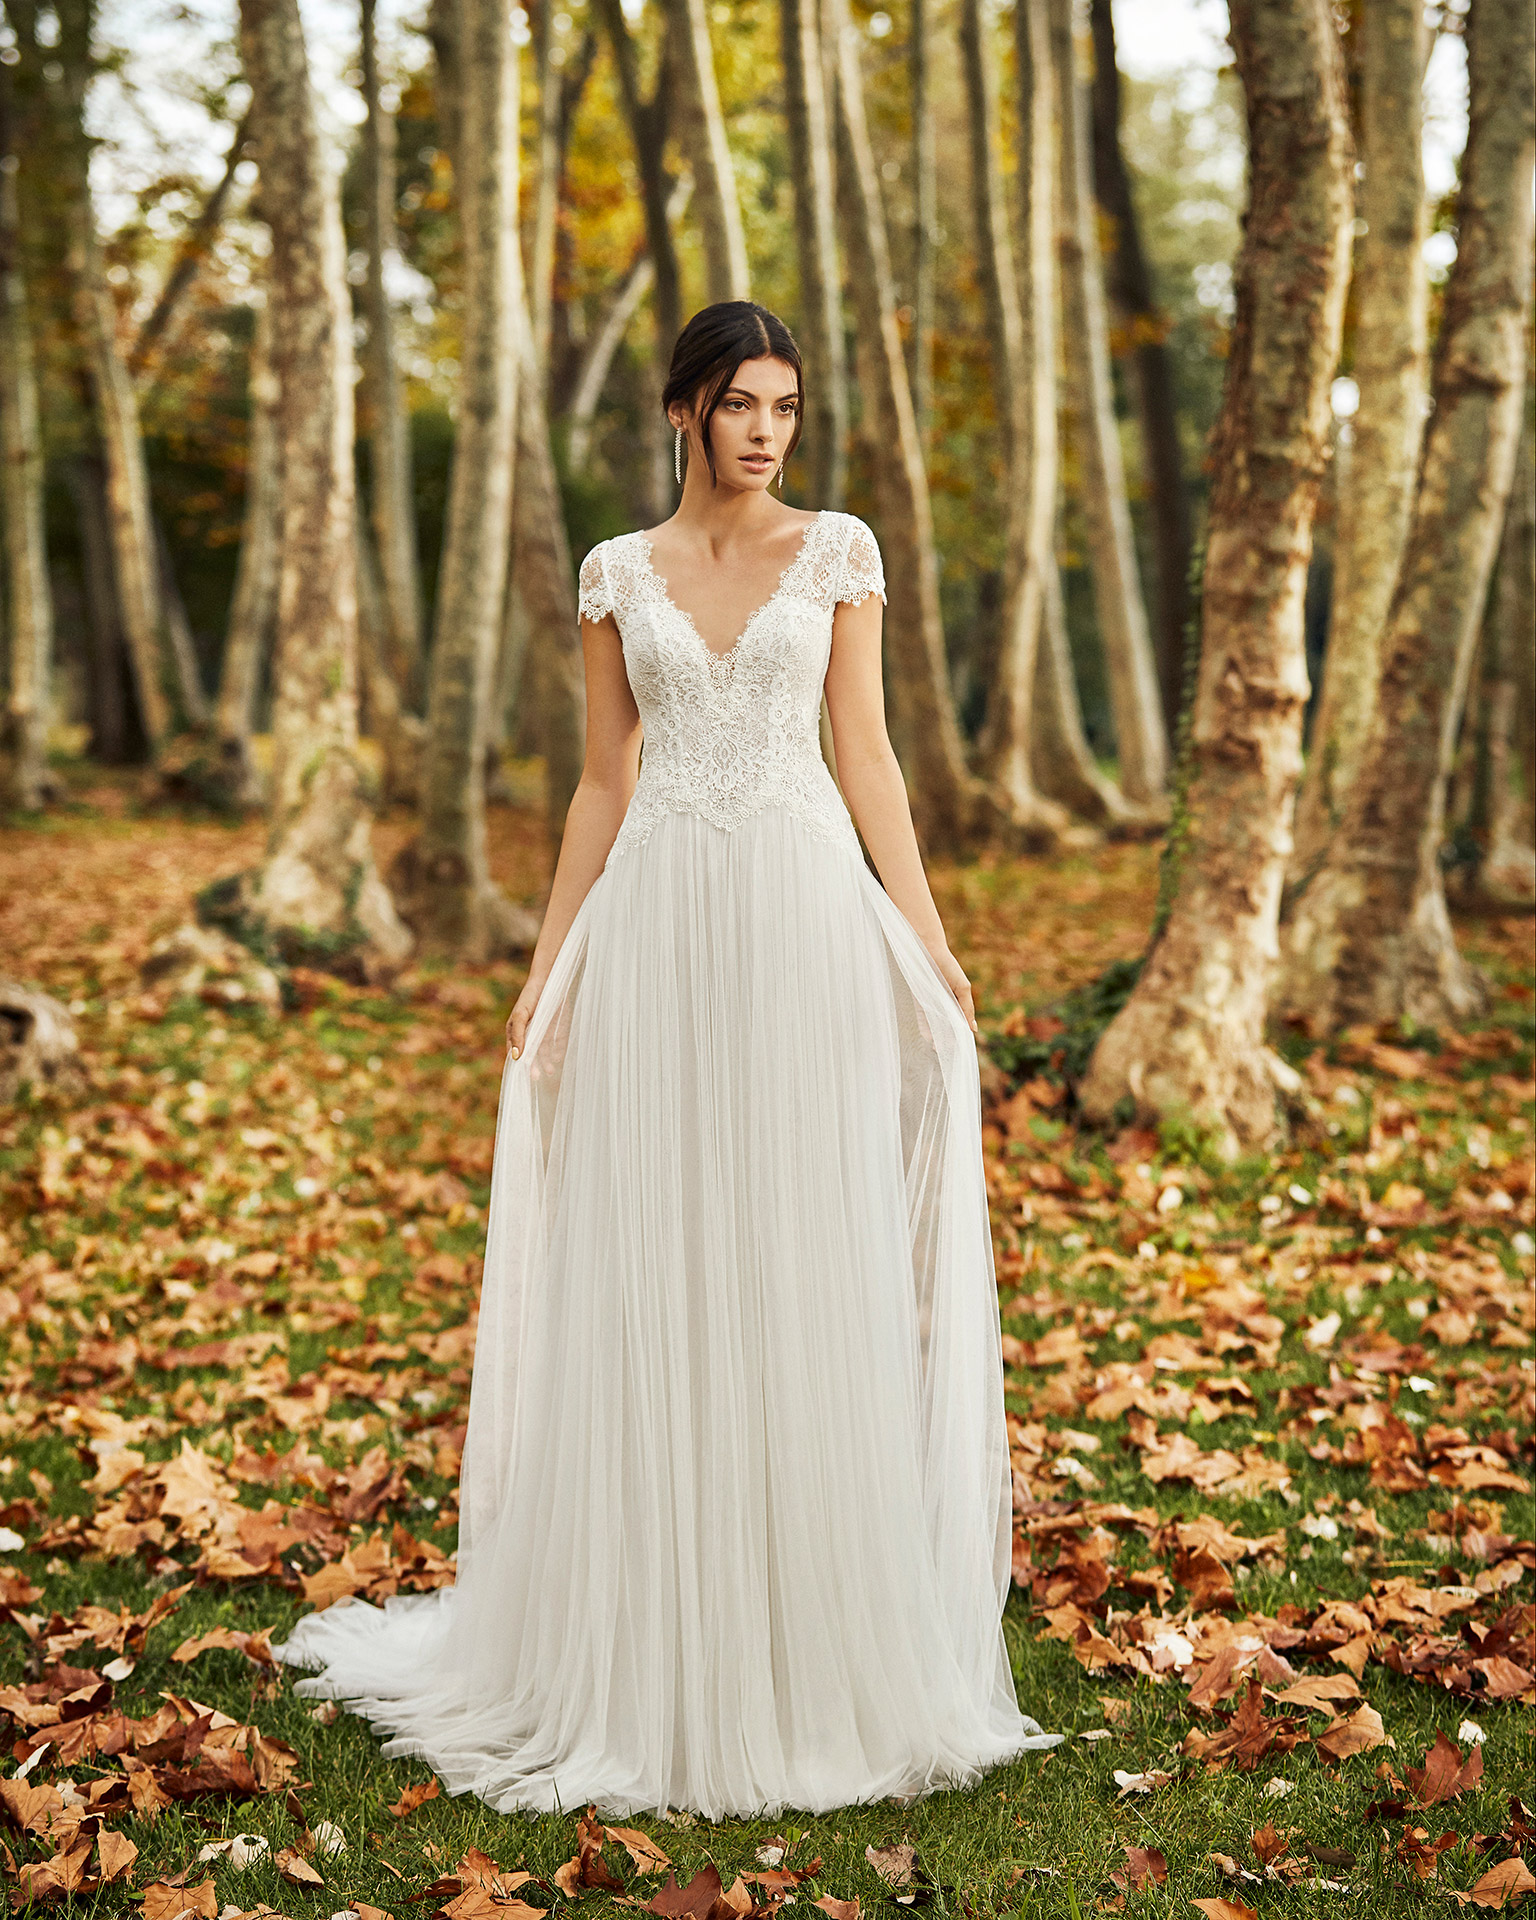 Lightweight pleated soft tulle and lace wedding dress with illusion neckline and back. 2020 ALMANOVIA Collection.